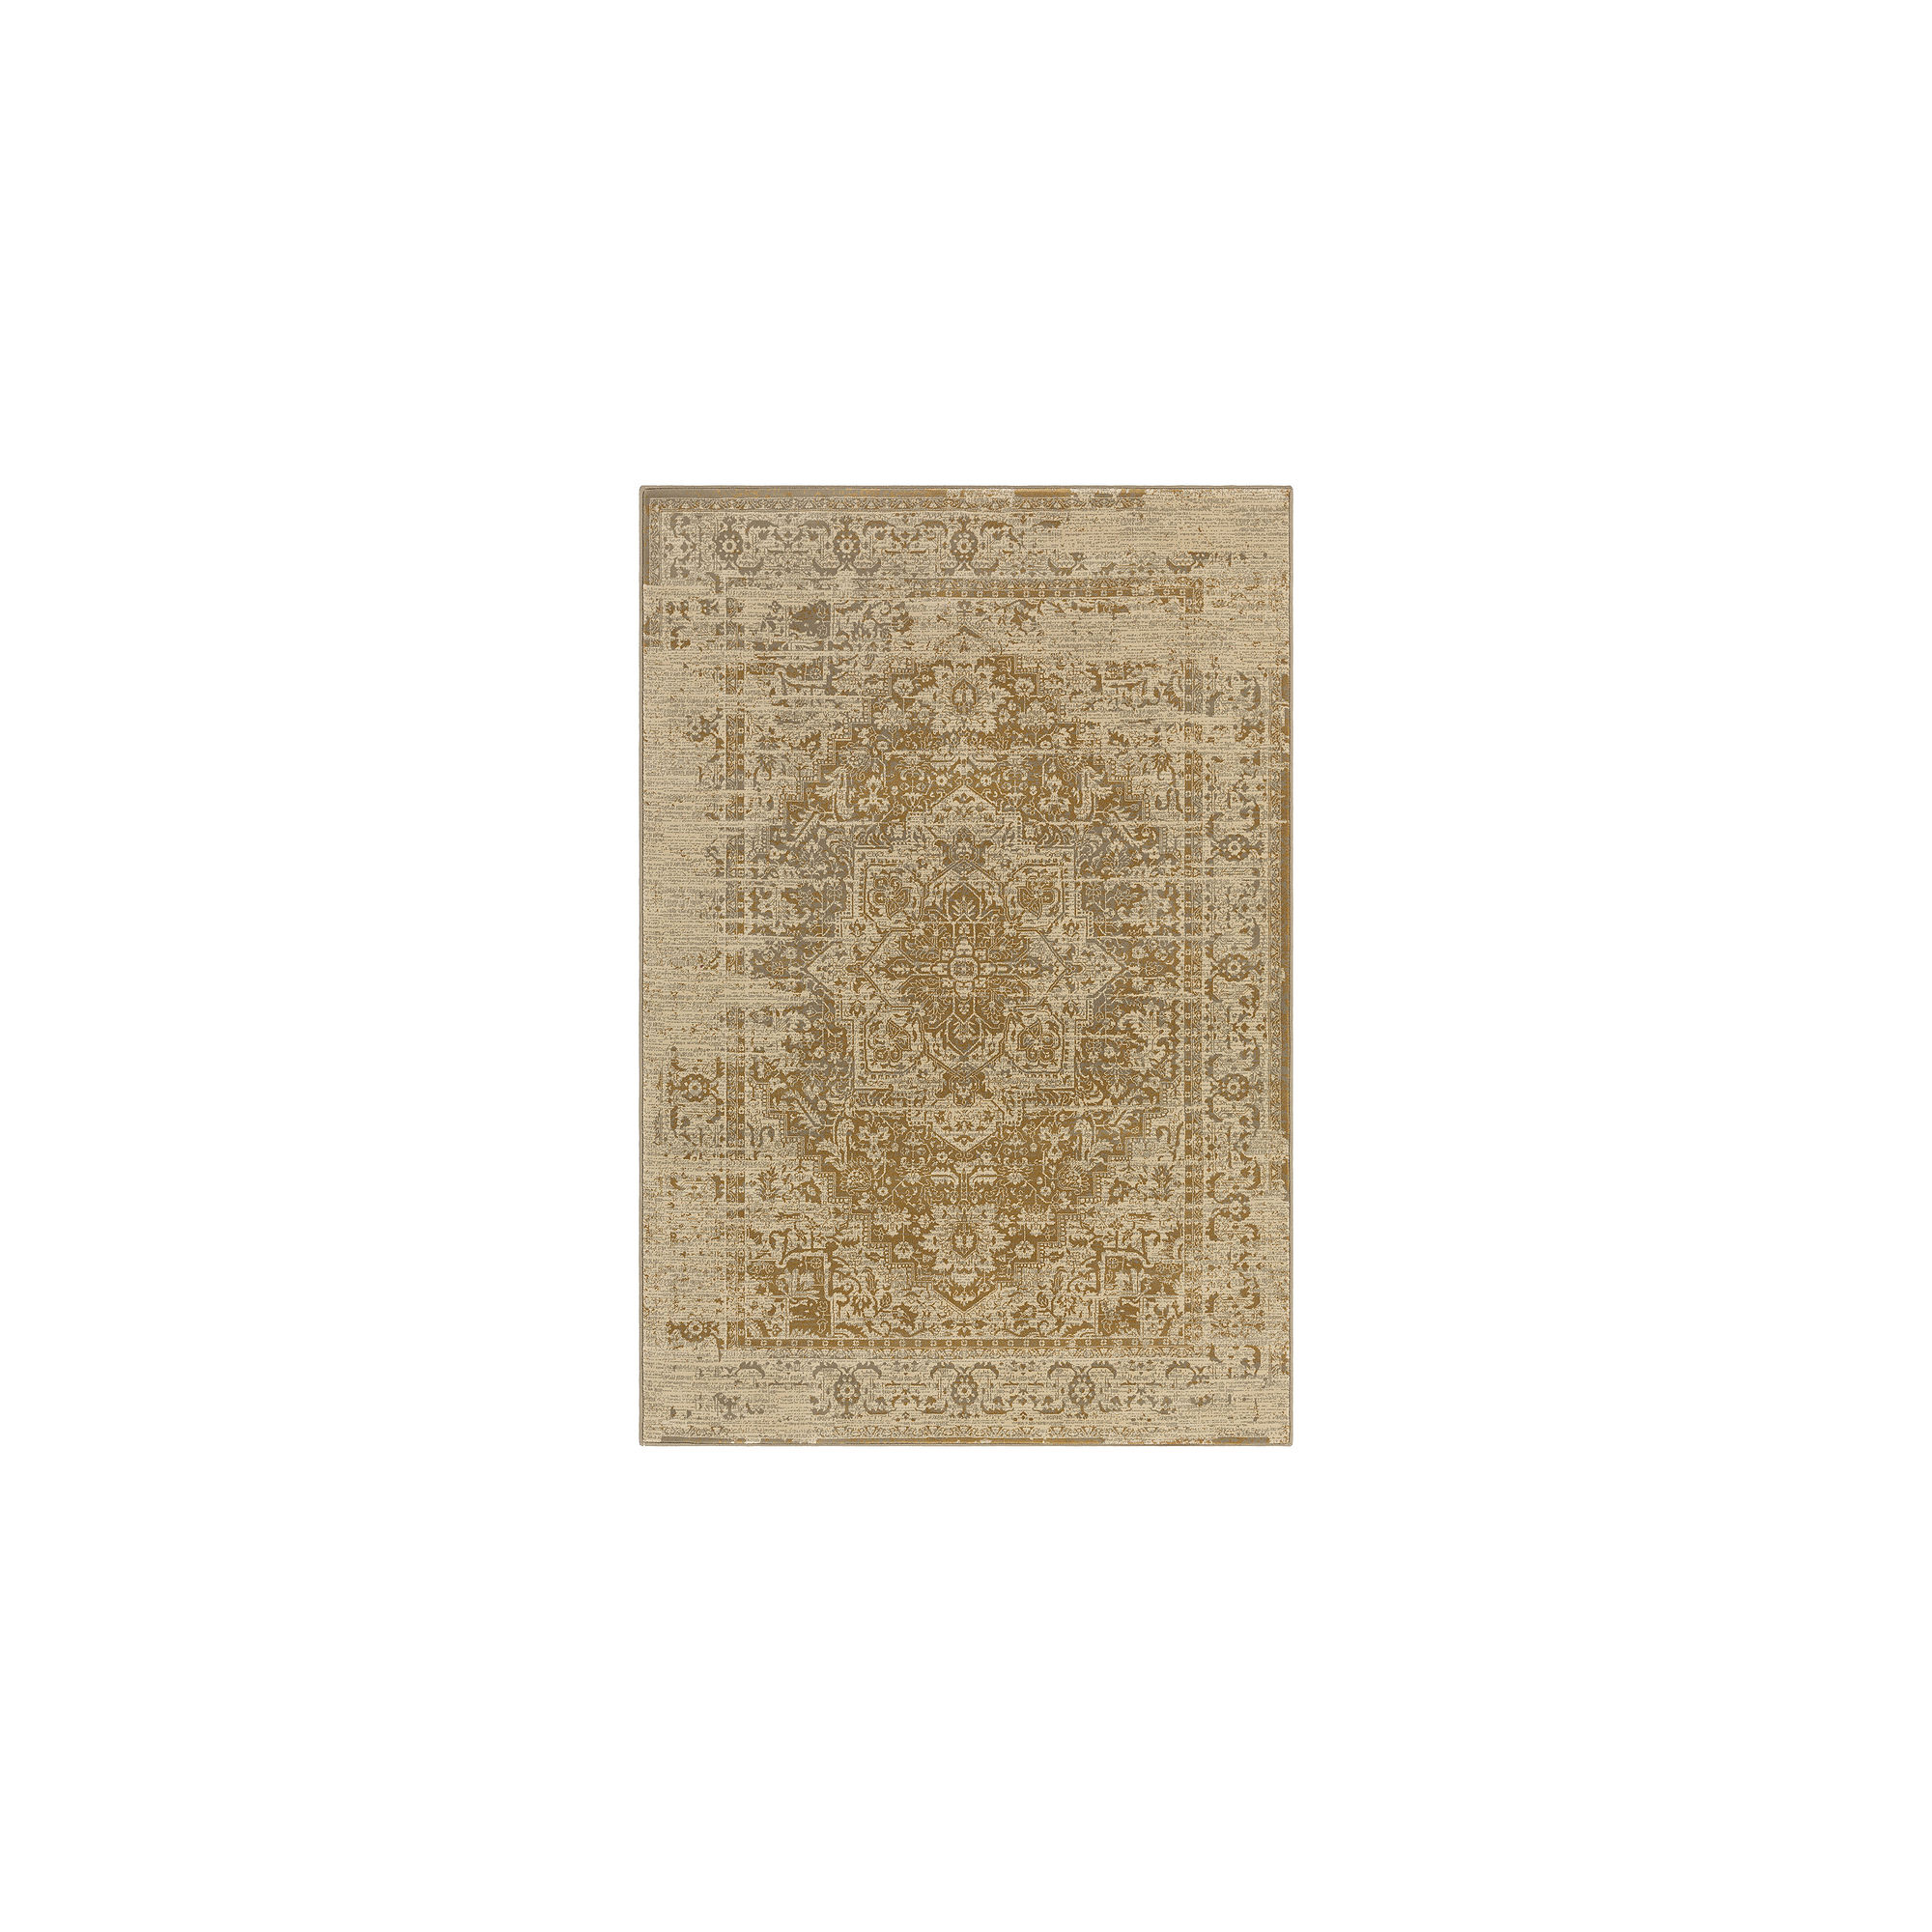 Decor 140 Telinda Rectangular Rugs